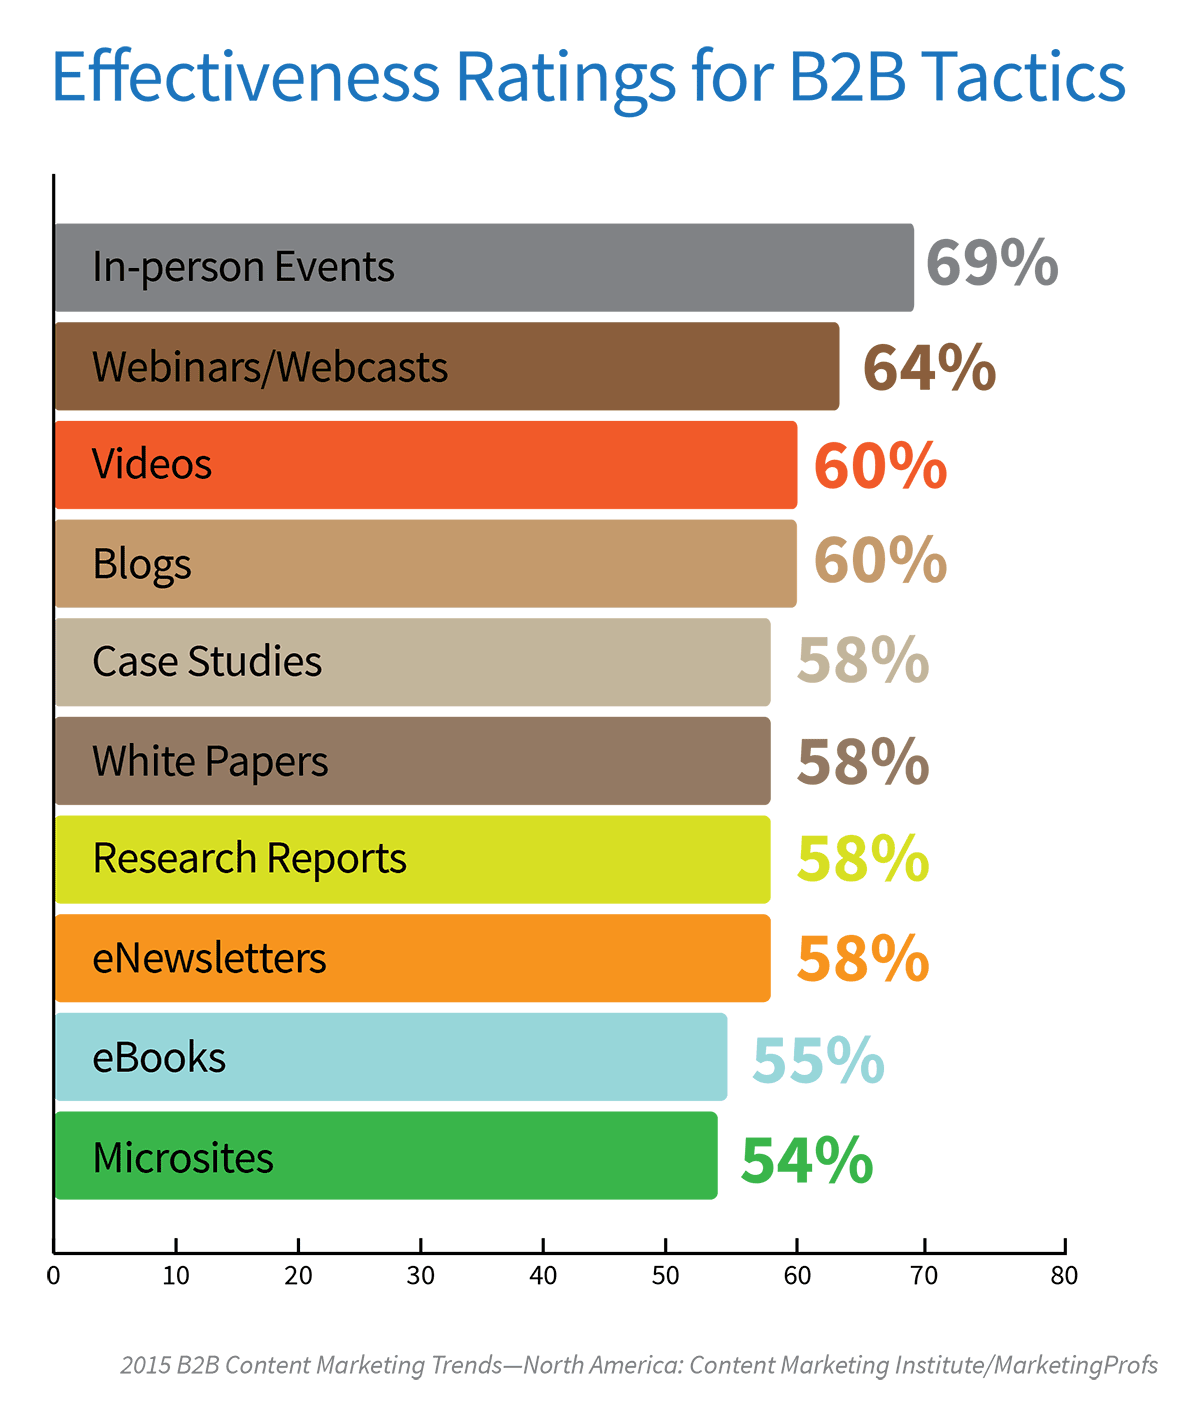 B2B-email-marketing-statistics-2015CMIProfsB2B_NewsletterEffectiveness